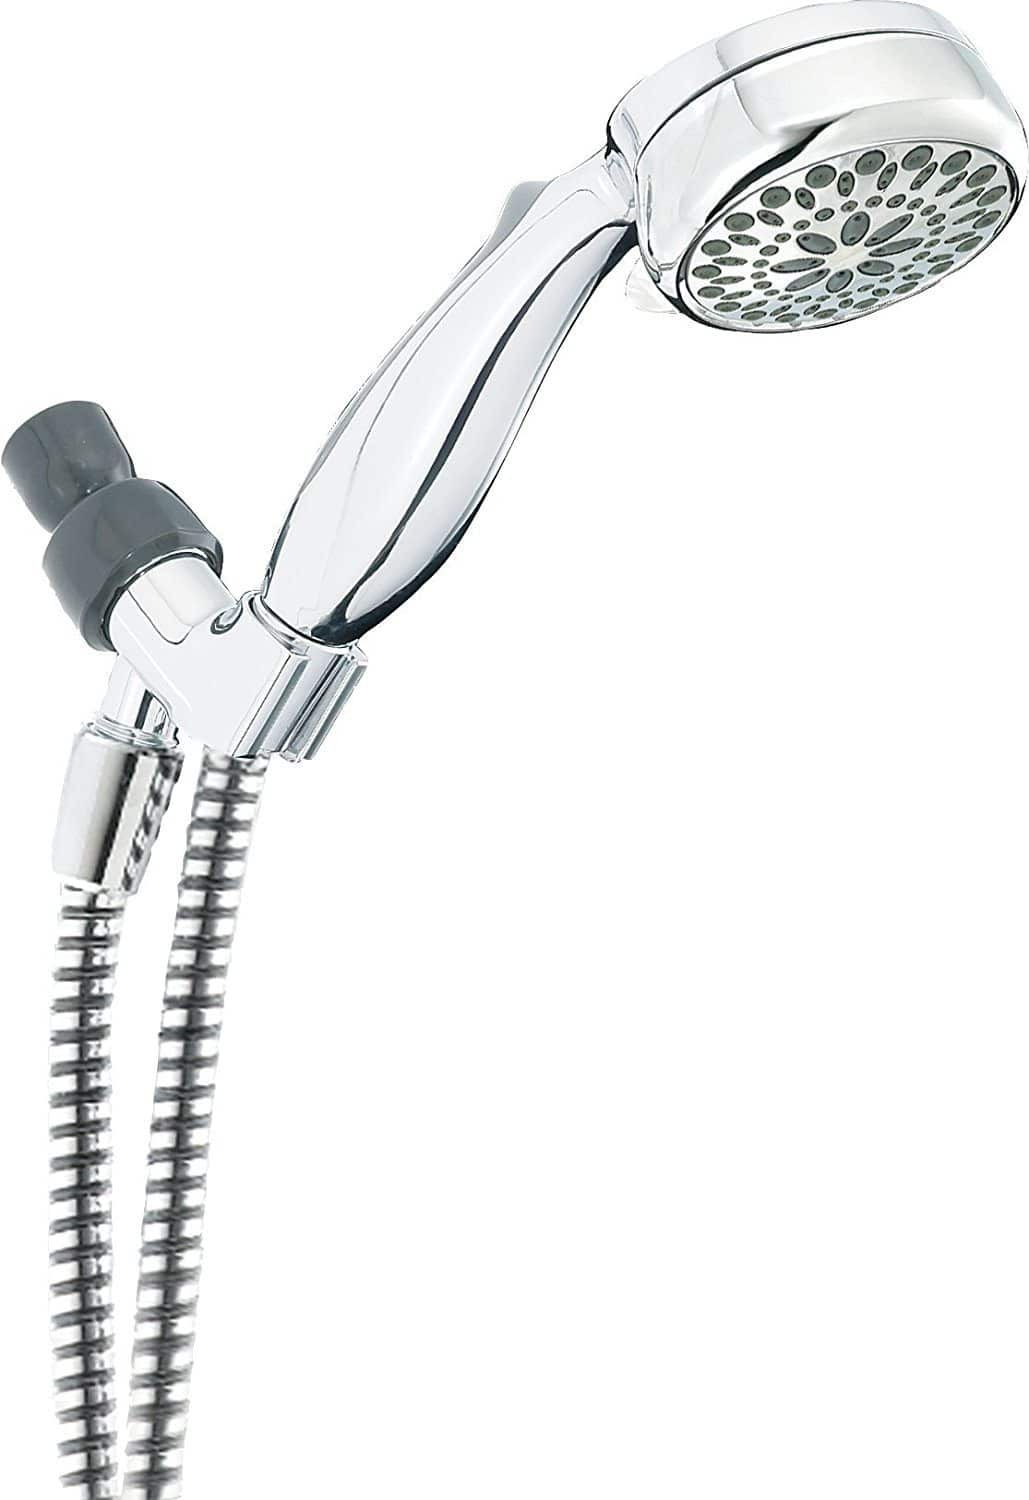 5 Best Handheld Shower Head Reviews (June 2018) | Top Combo Sets